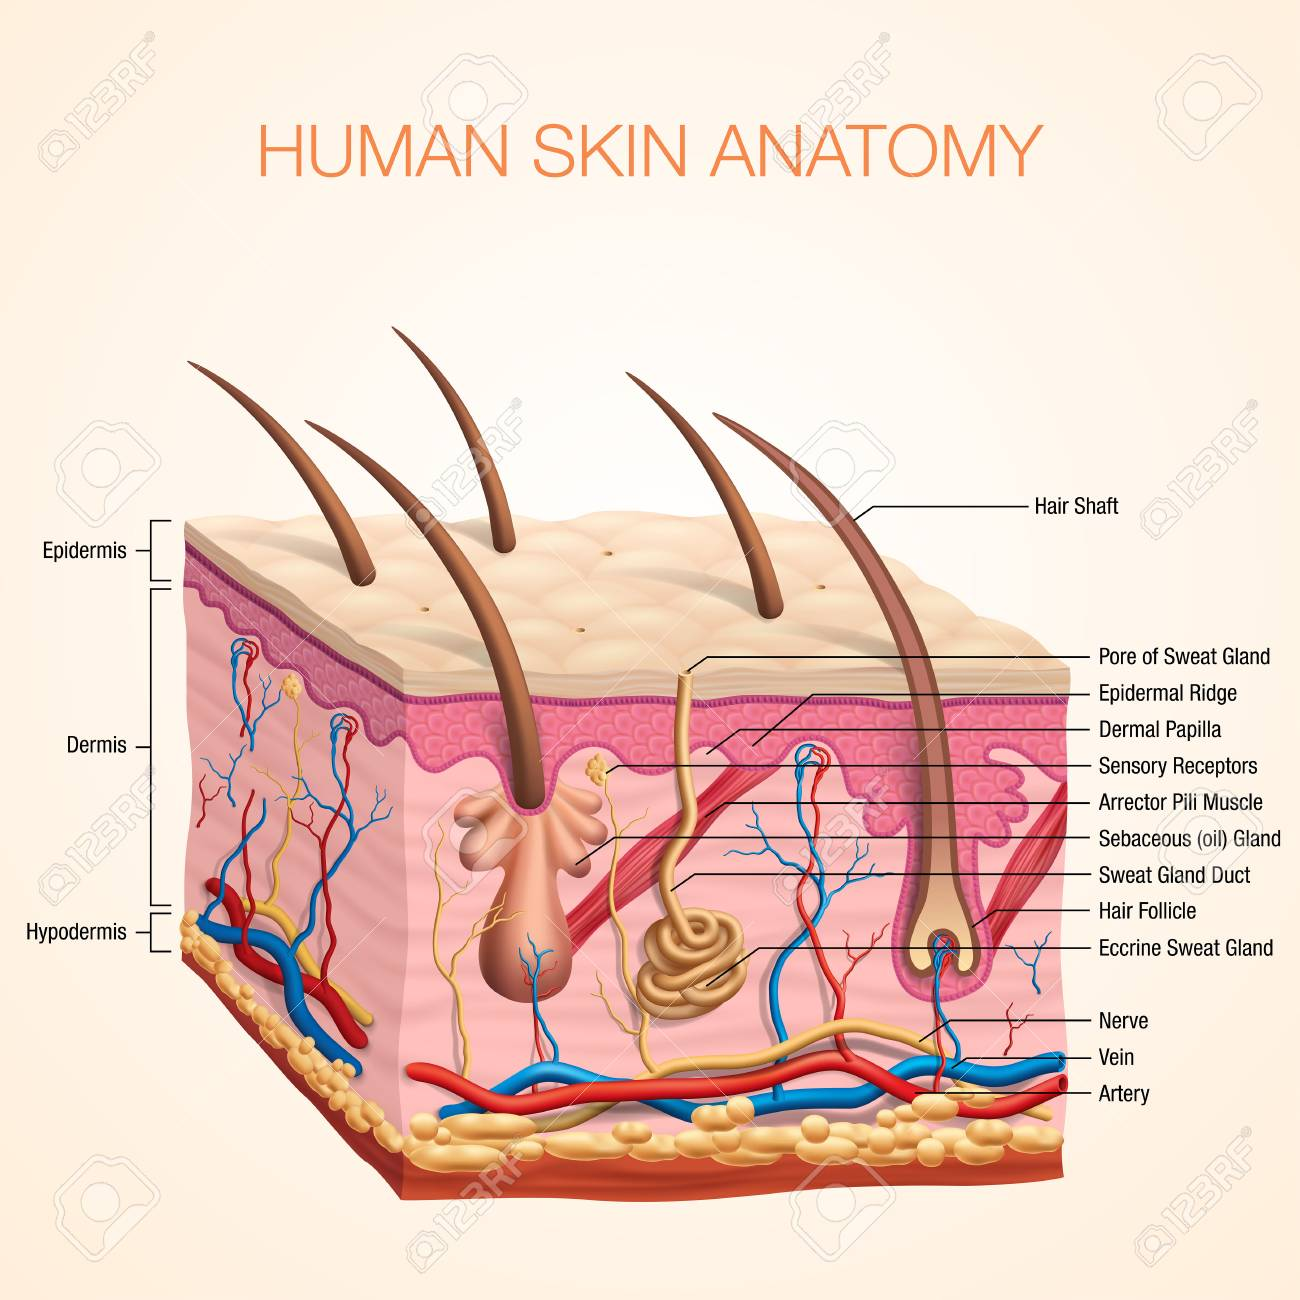 Human Body Skin Anatomy Vector Illustration With Parts Vein Artery